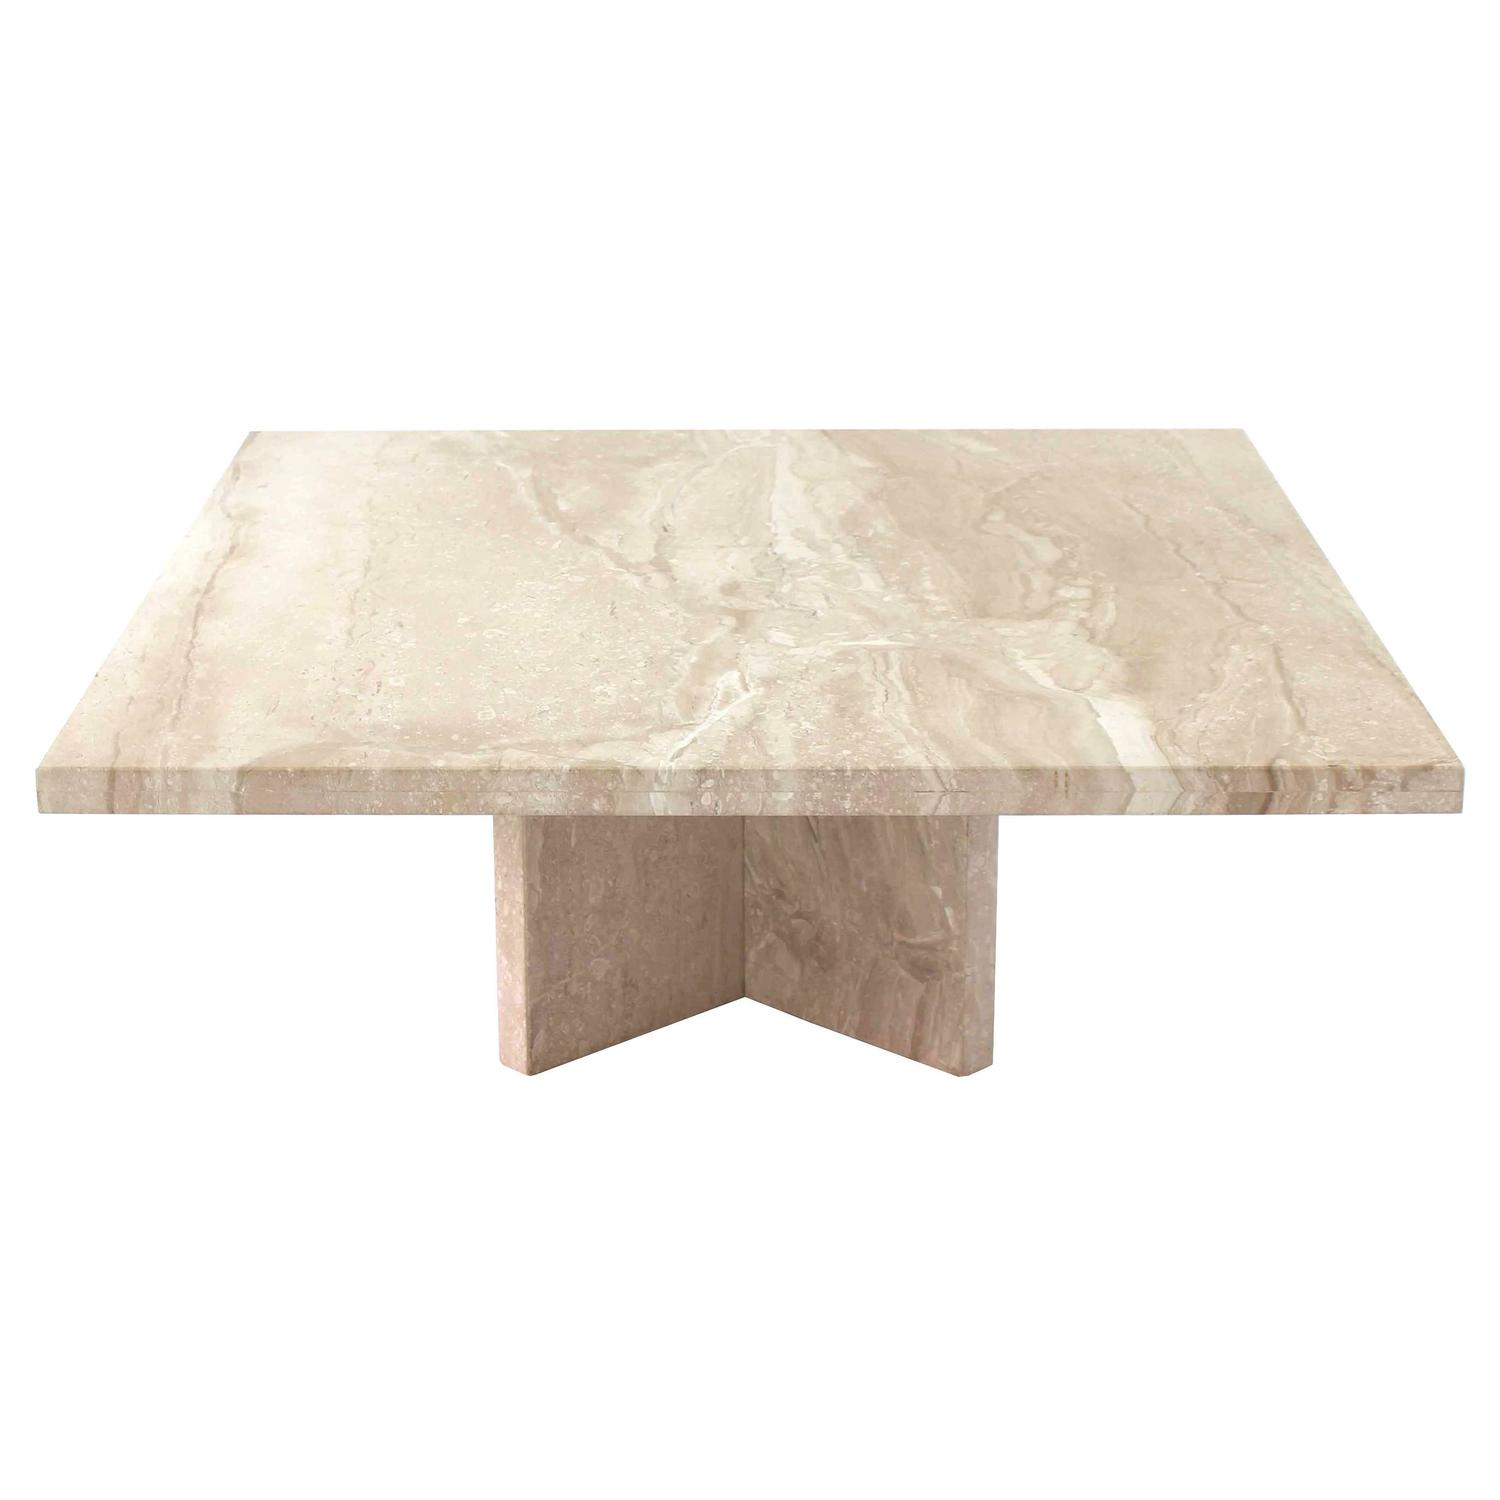 Large square travertine coffee table for sale at 1stdibs Large square coffee table